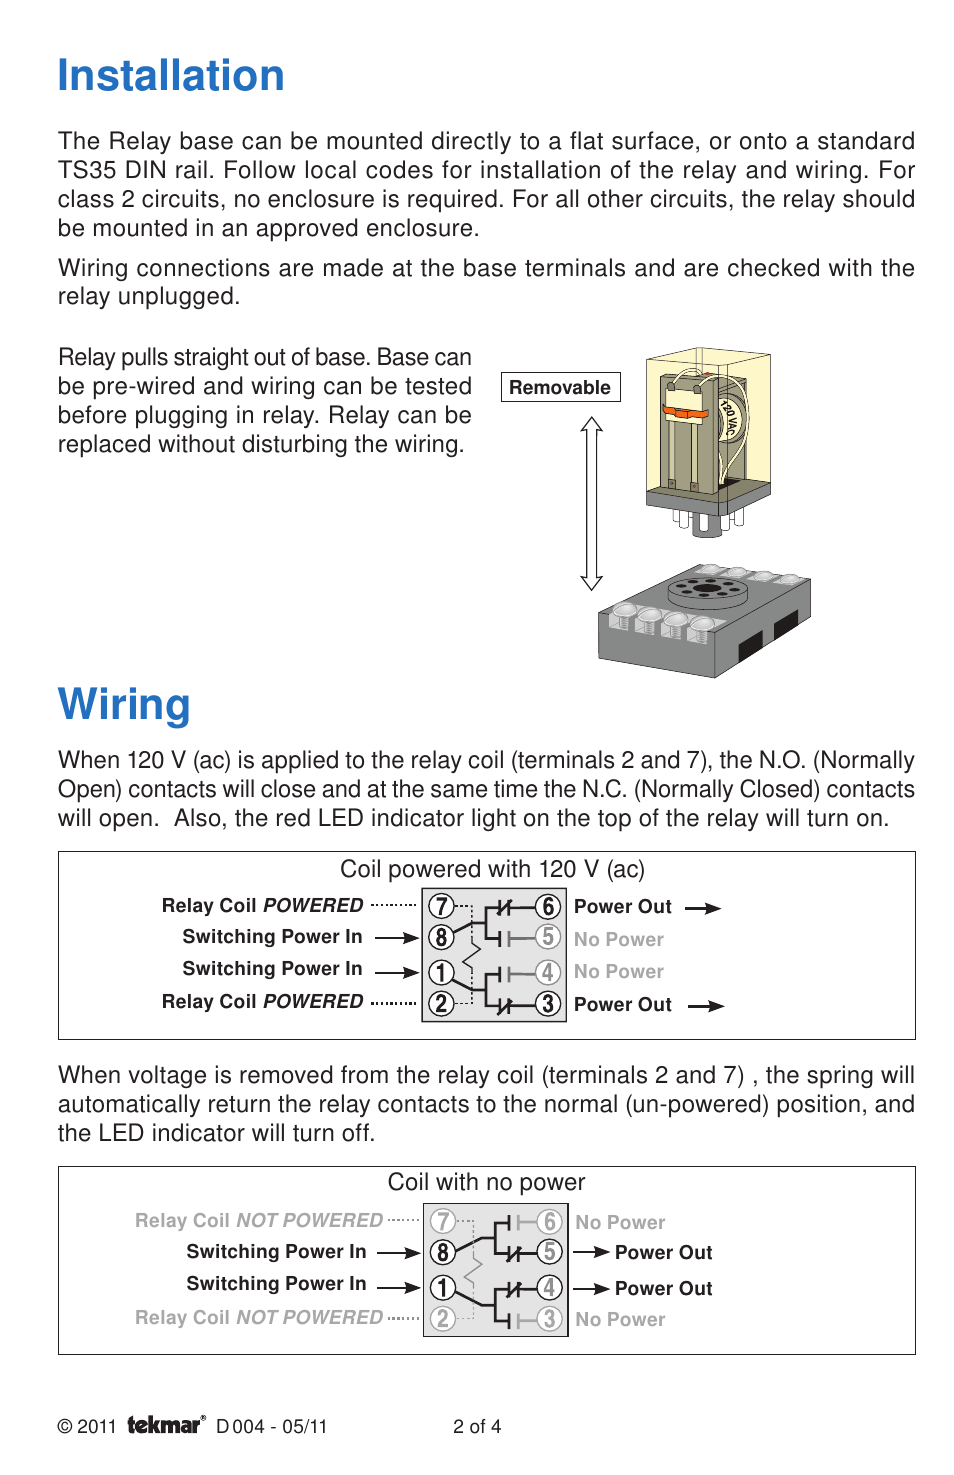 medium resolution of tekmar wiring diagram wiring diagrams lolwiring installation tekmar 004 relay user manual page 2 4